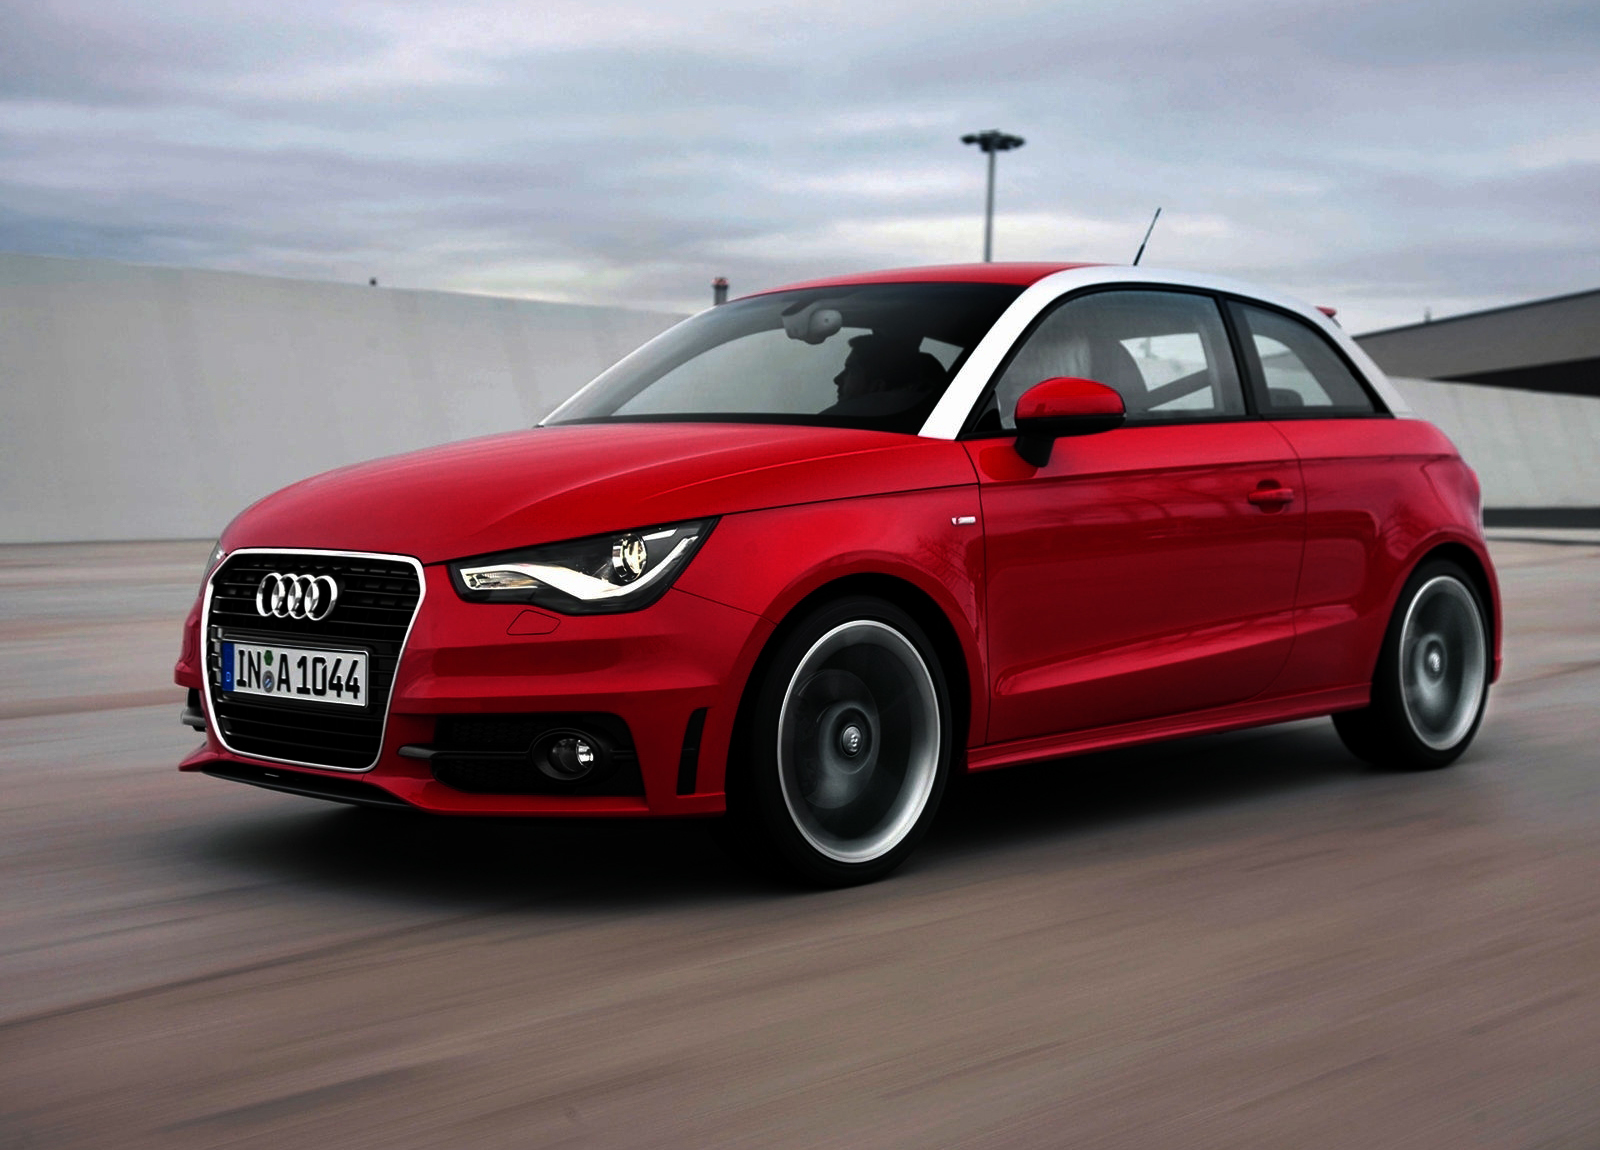 Audi A1 Hd Wallpapers The World Of Audi